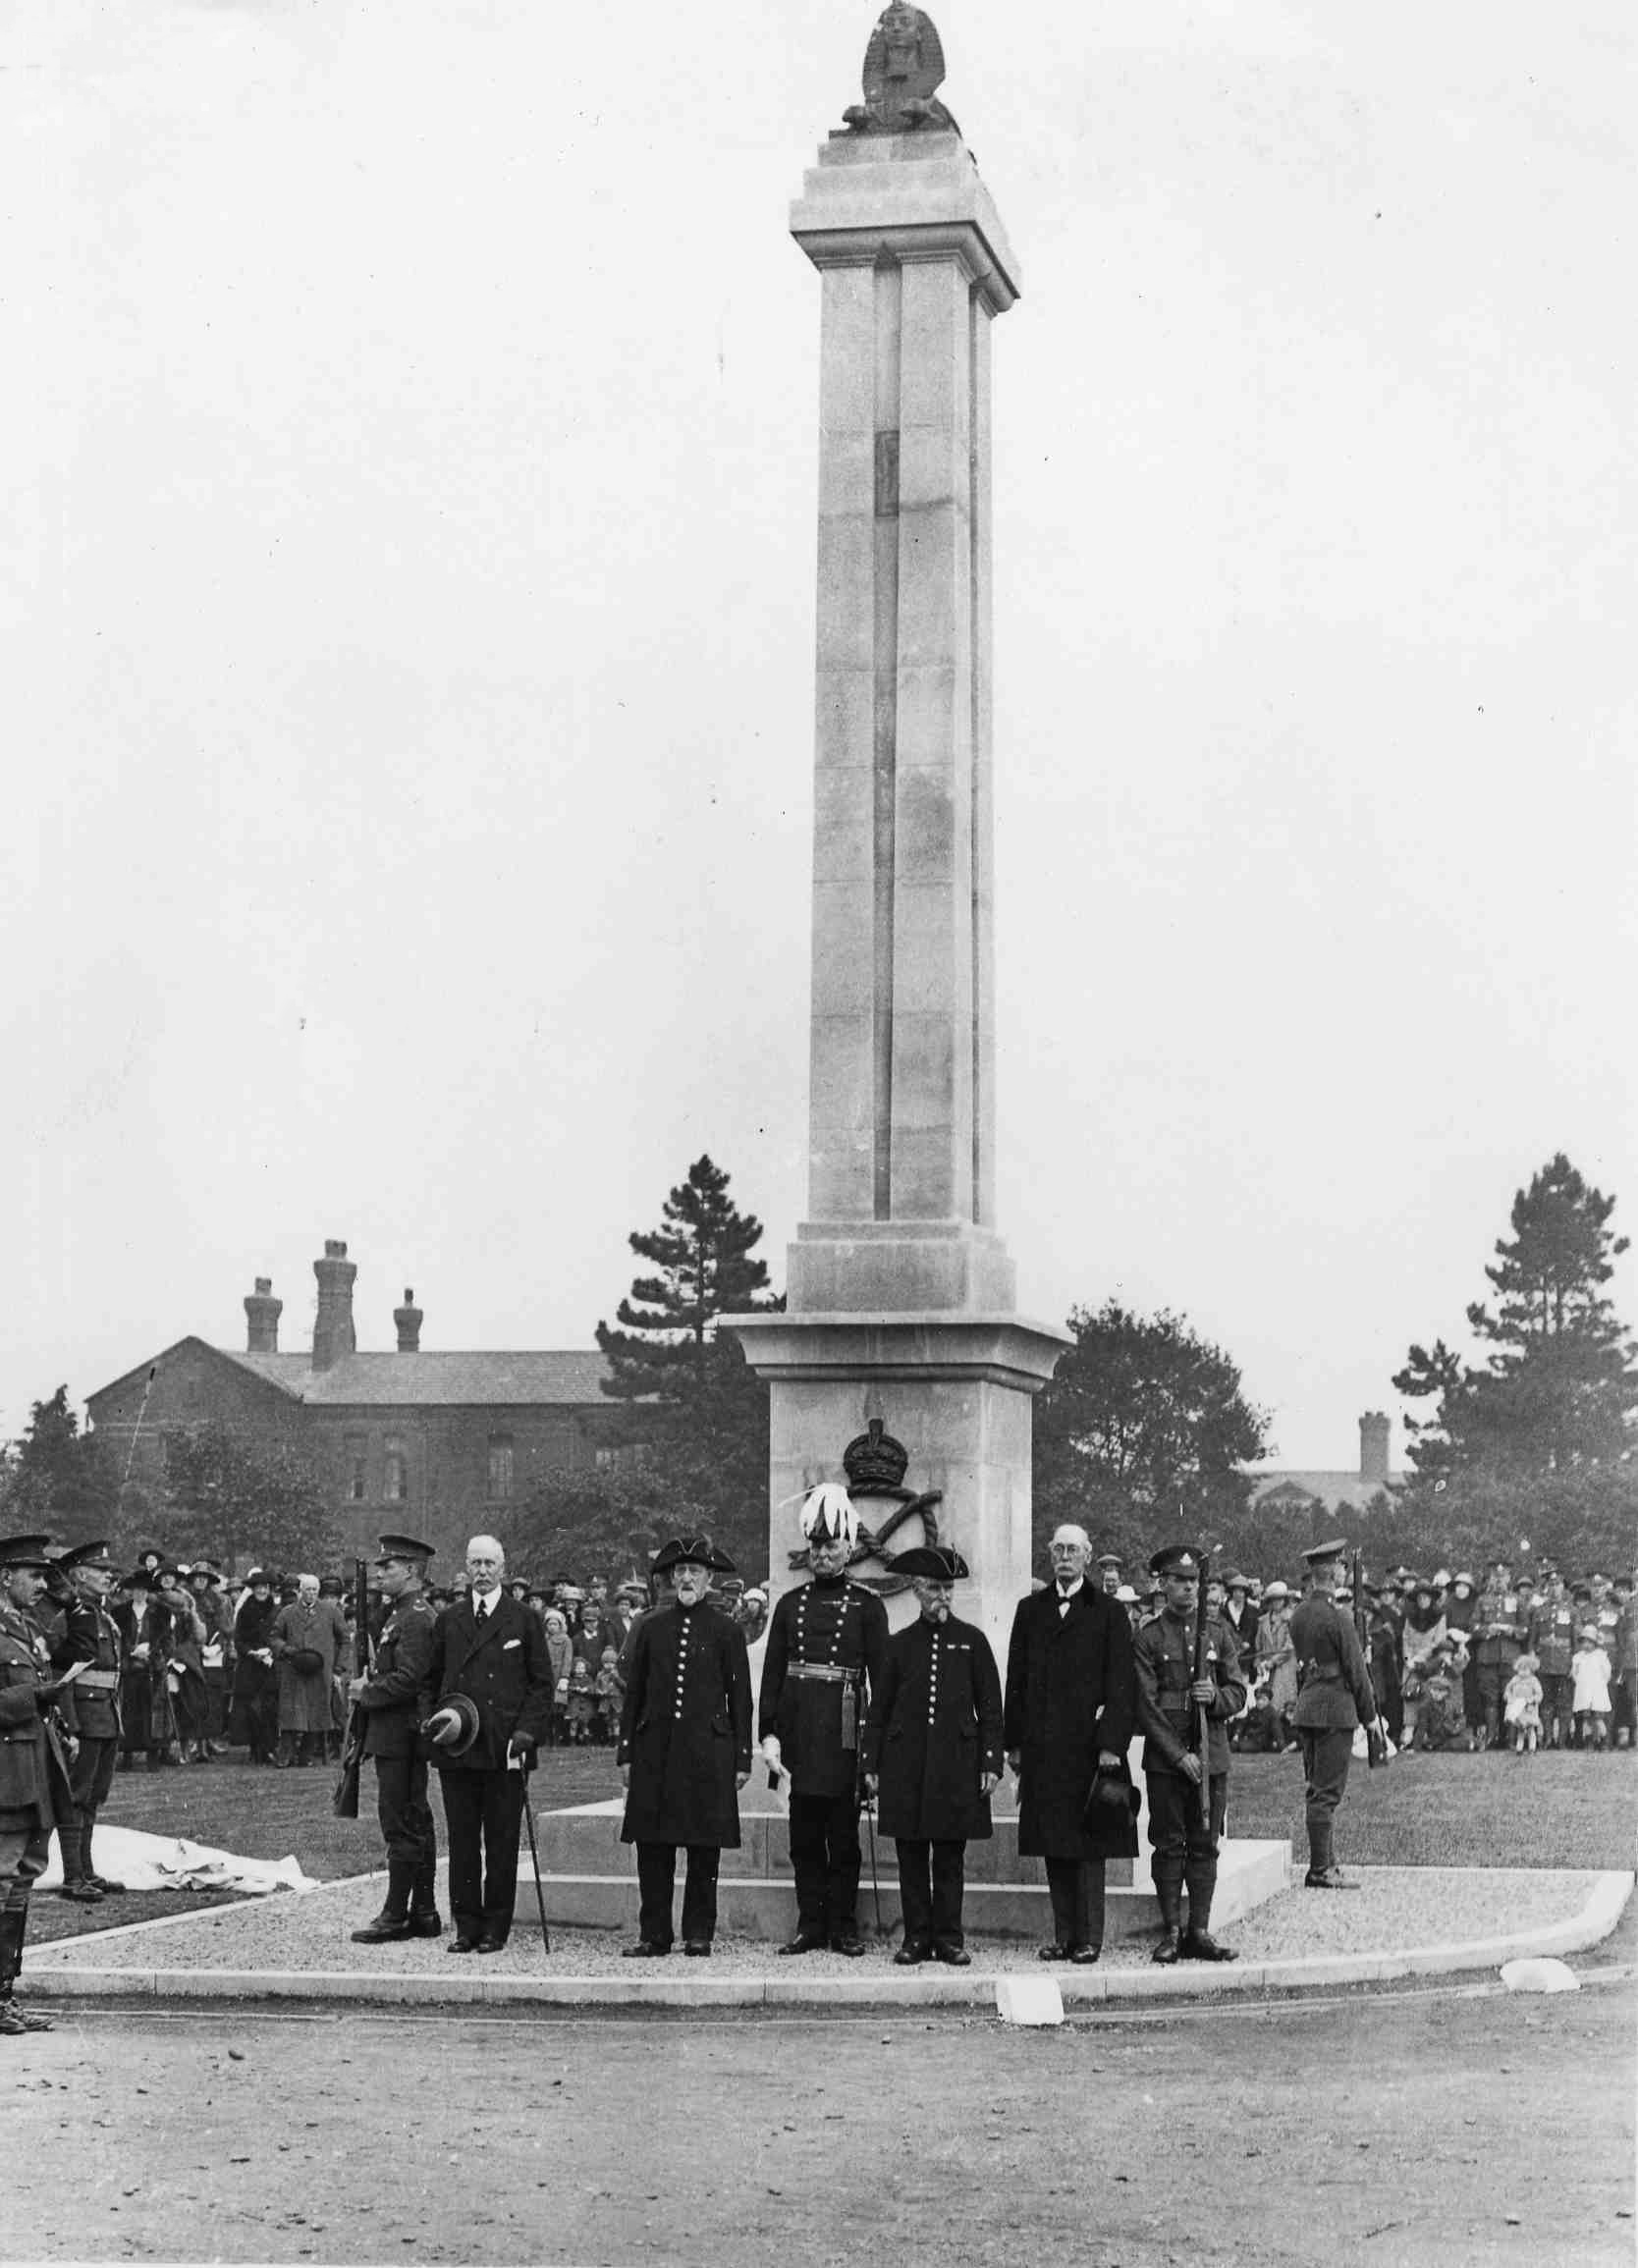 Photograph of the unveiling and dedication of the South Staffordshire Regimental War Memorial on 30 September 1922.